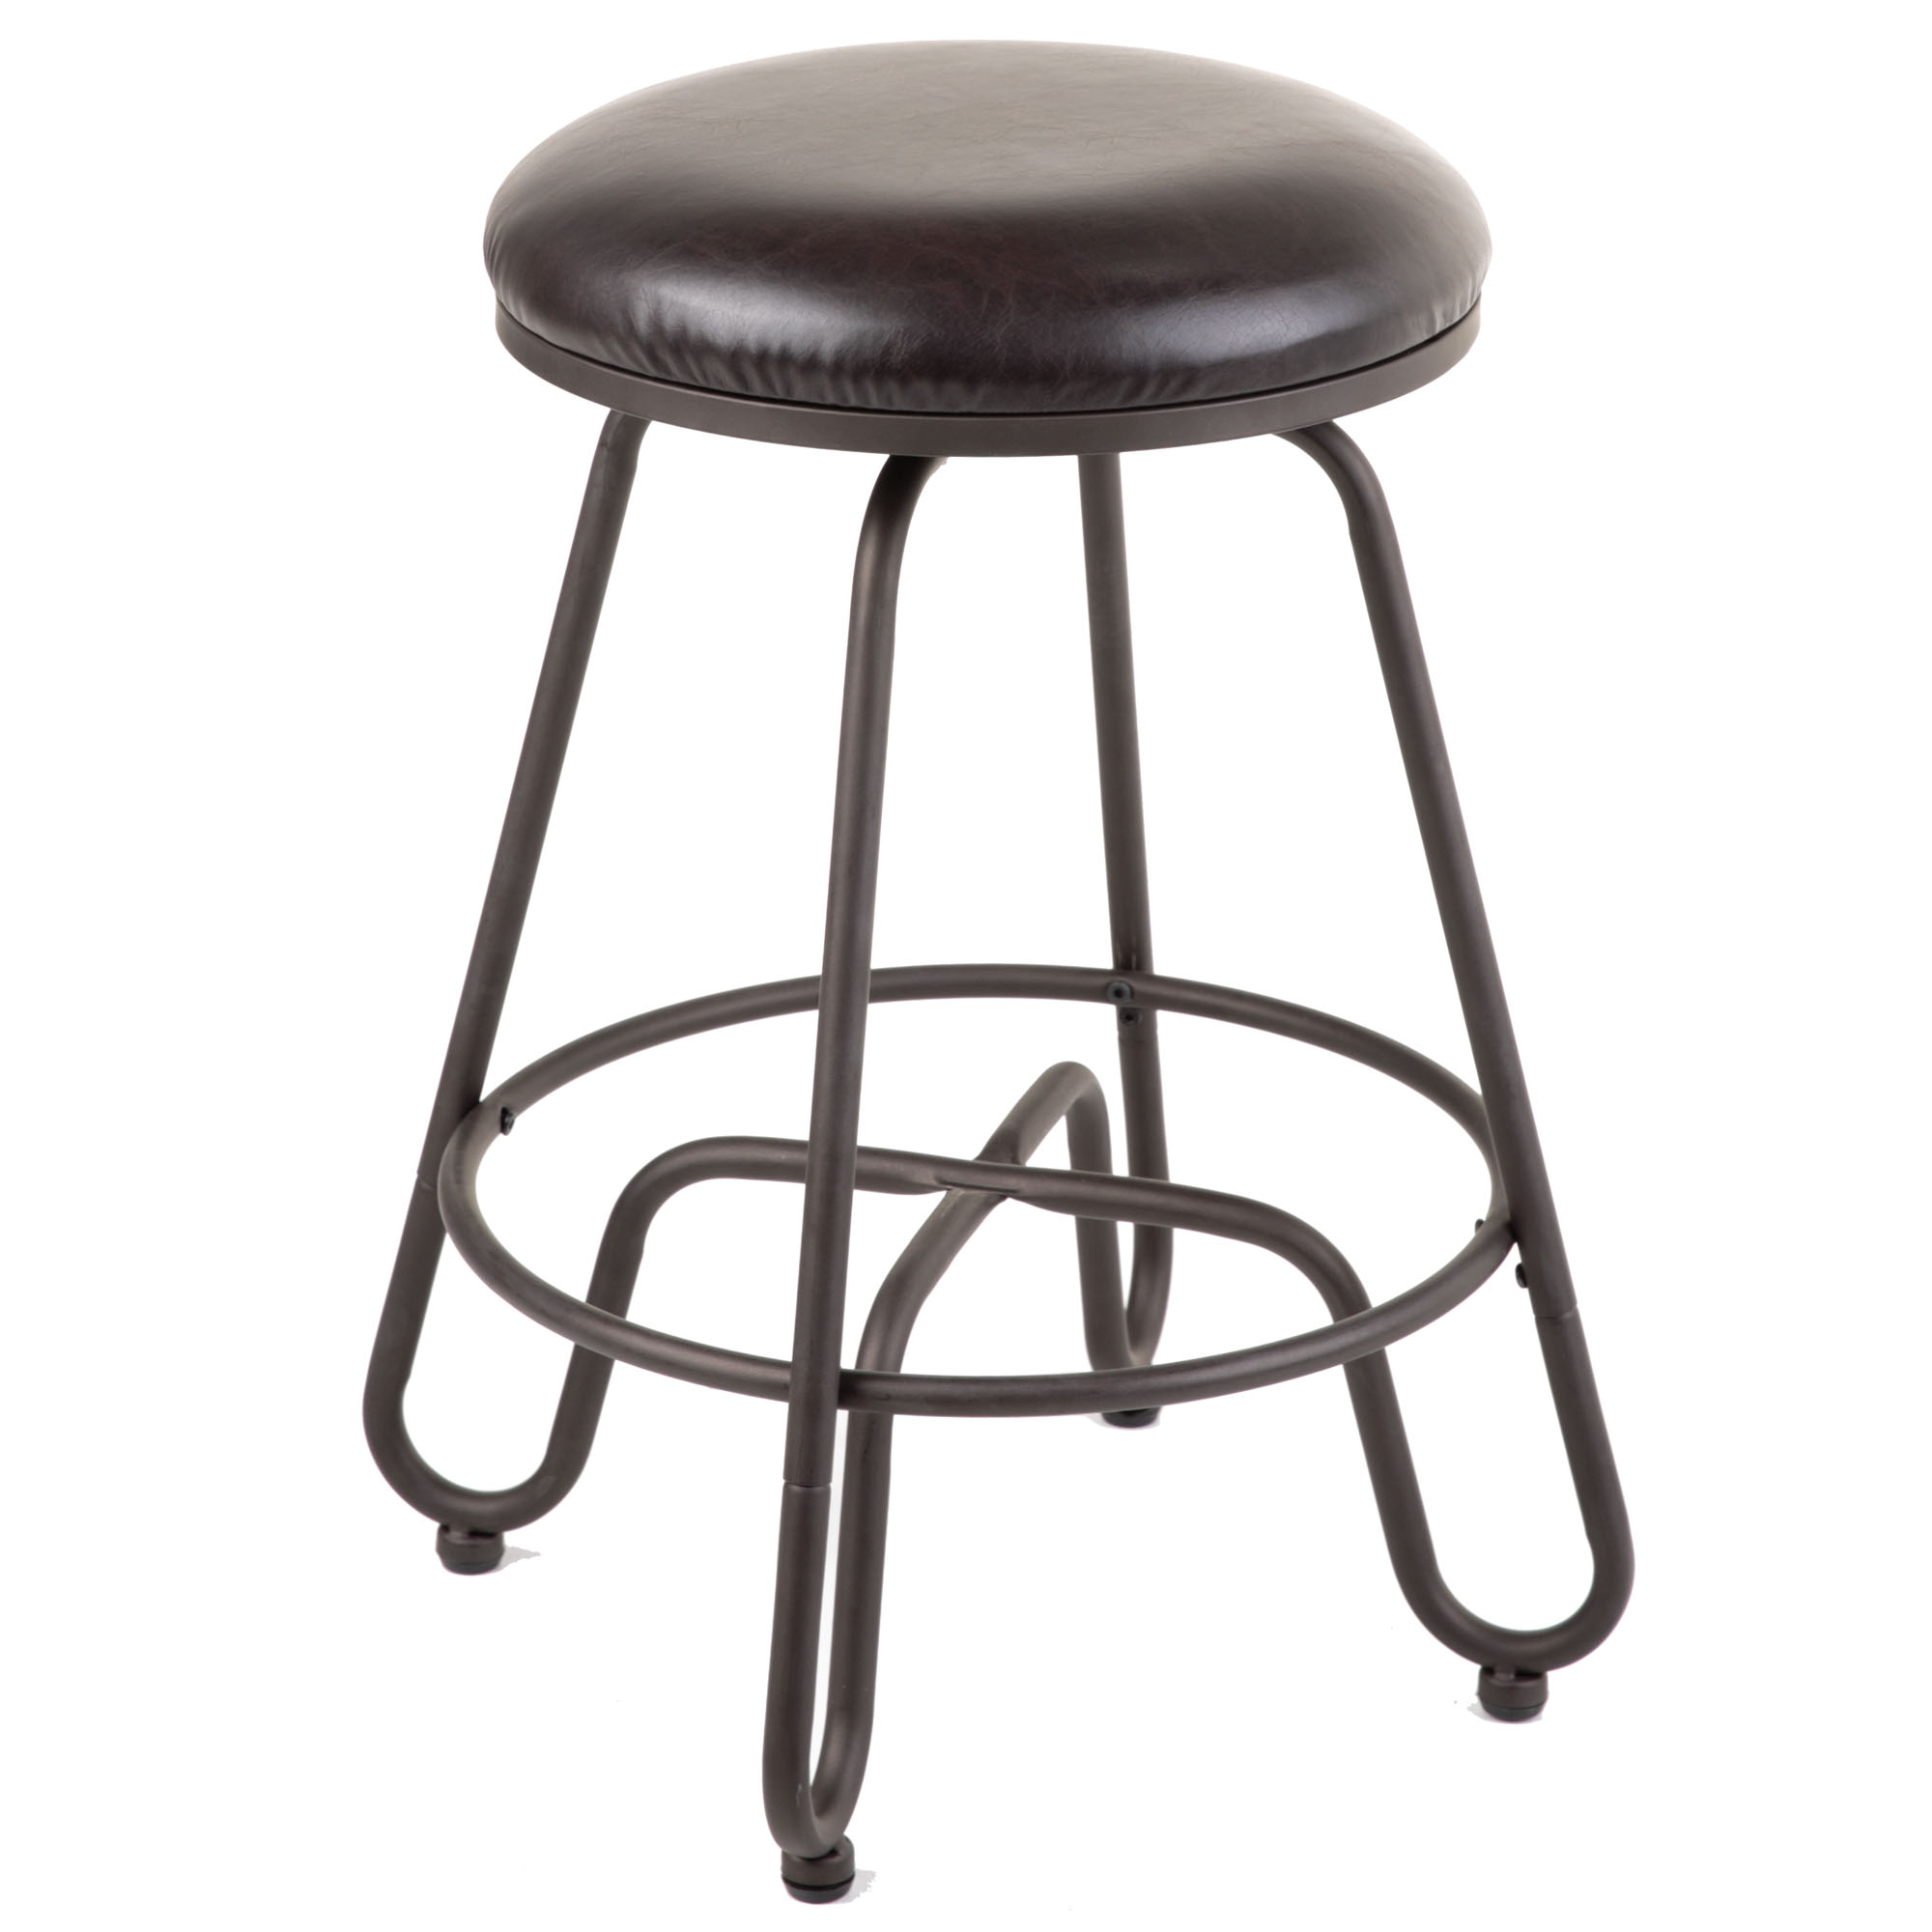 C1m010fashion Bed Group Denver Backless Swivel Seat Bar Stool With